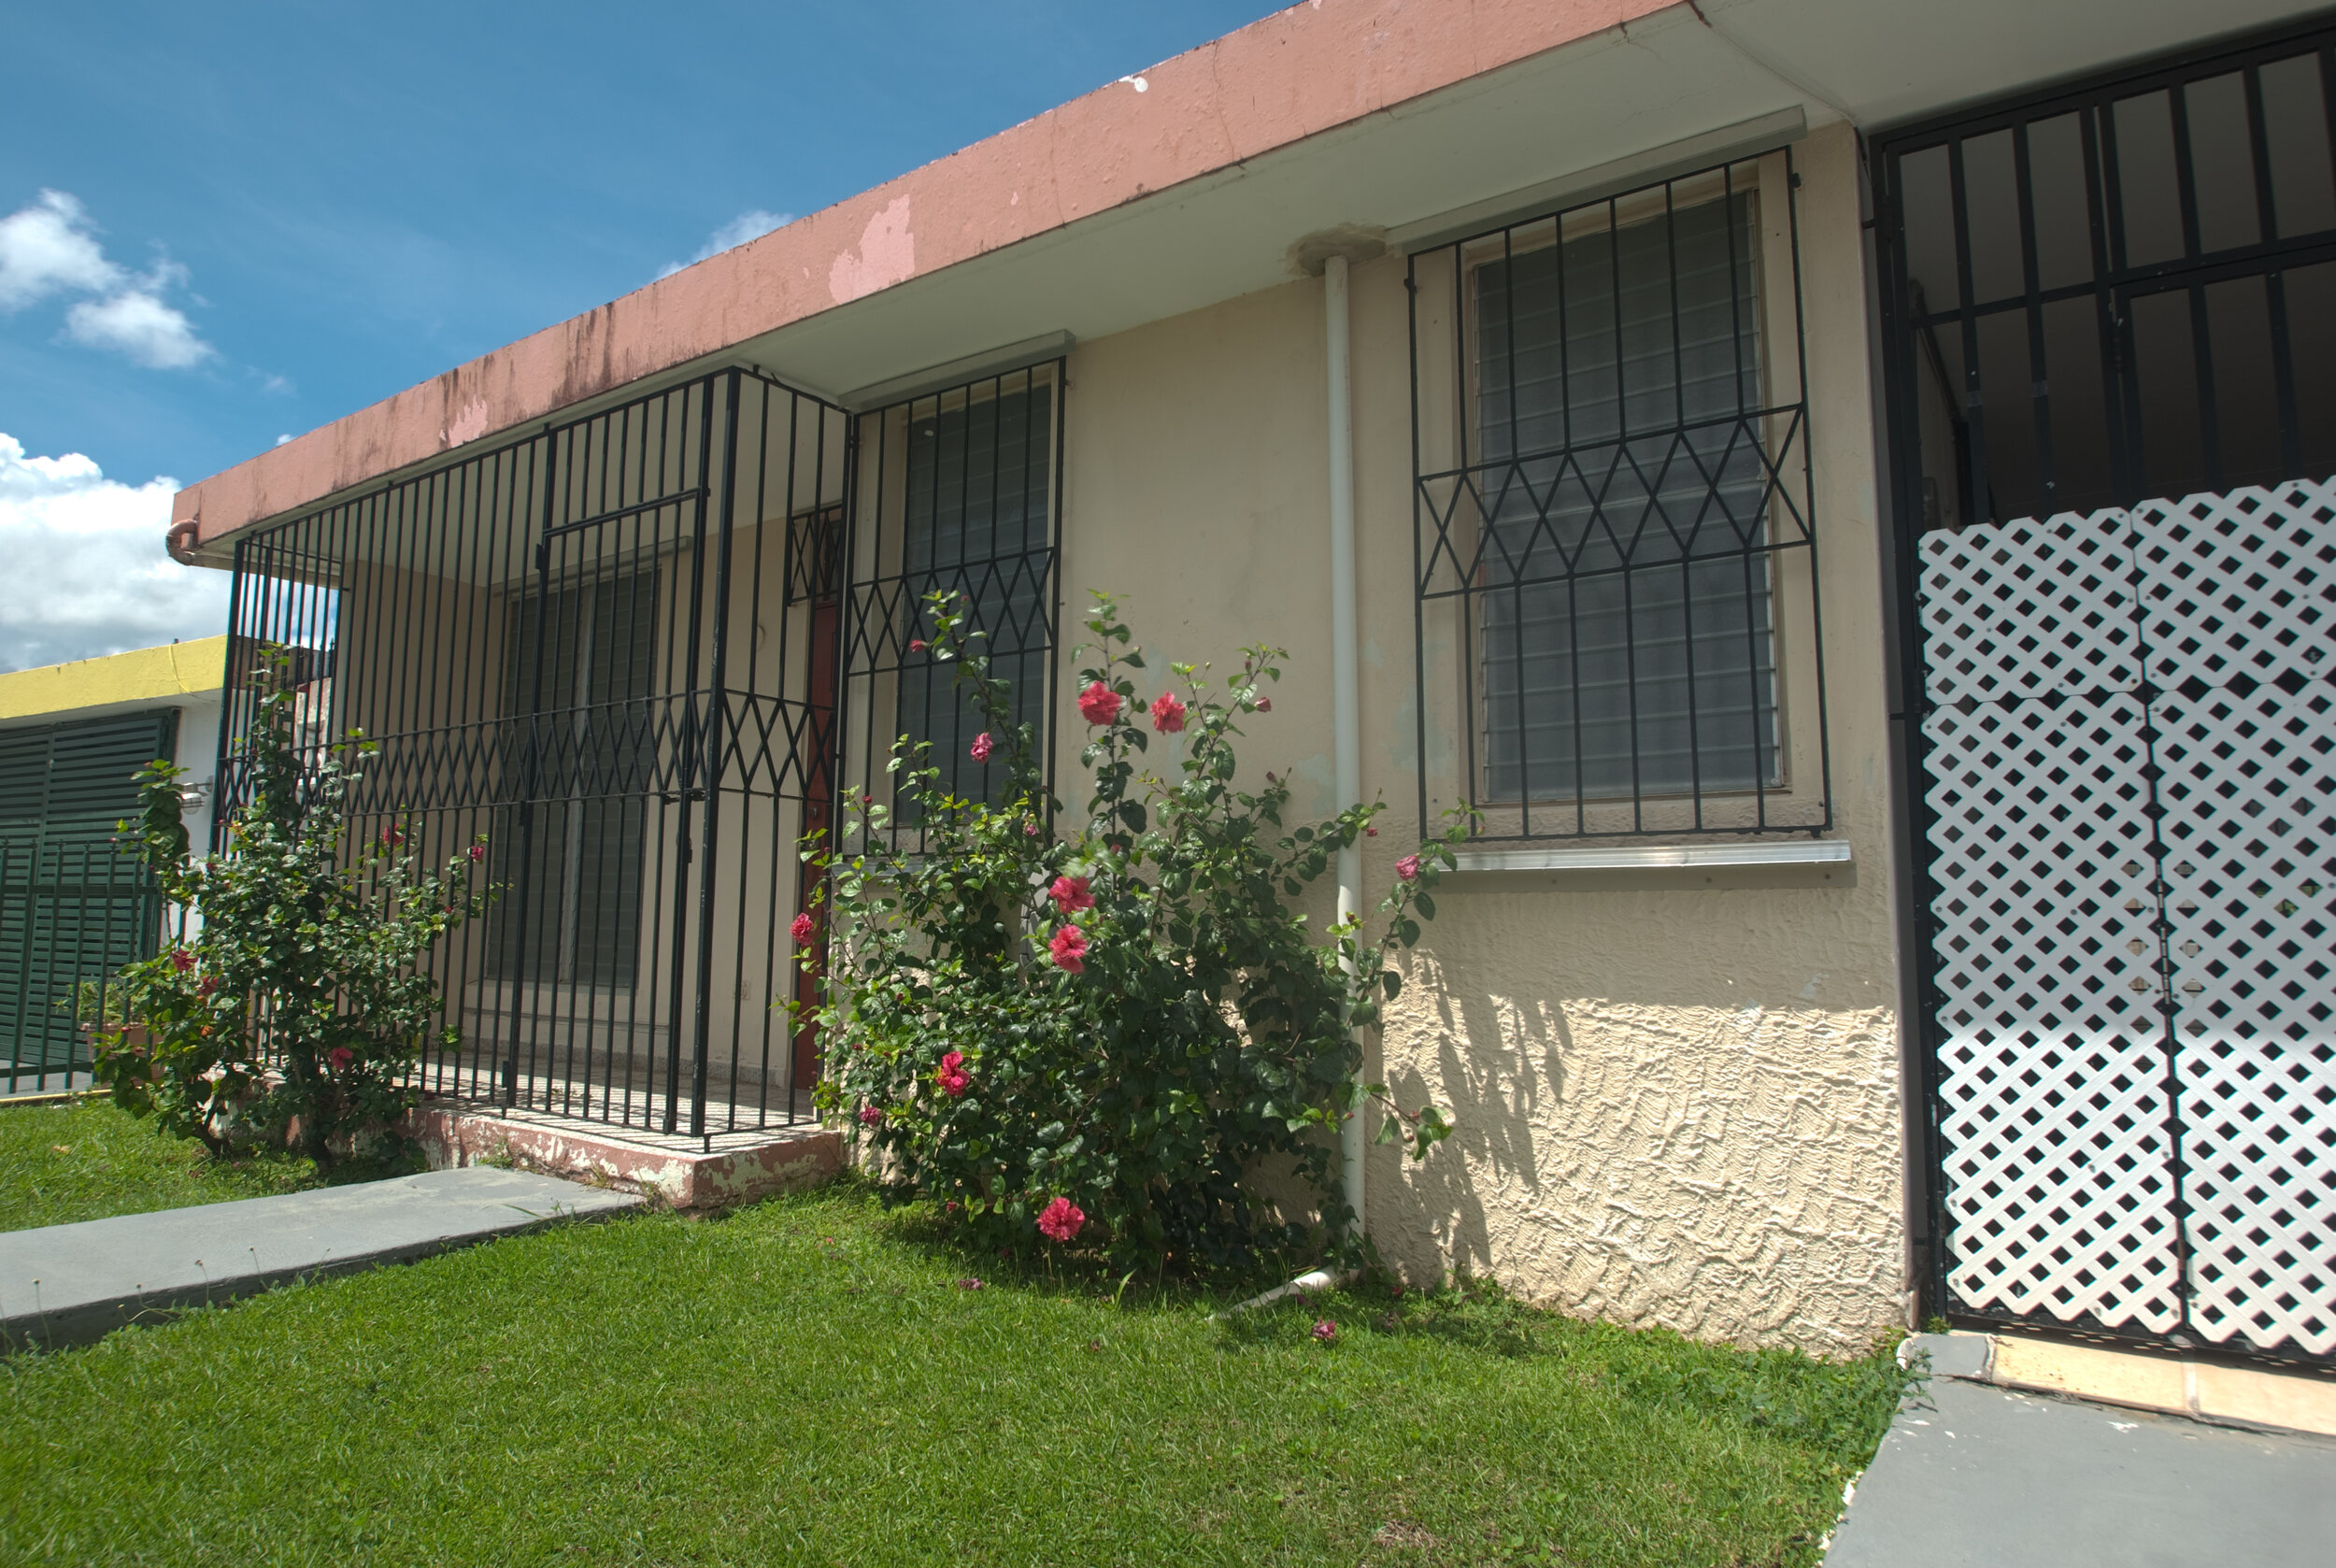 Casa Keila, $164,000, 4 Bedrooms / # Bathrooms  Trujillo Alto, PR